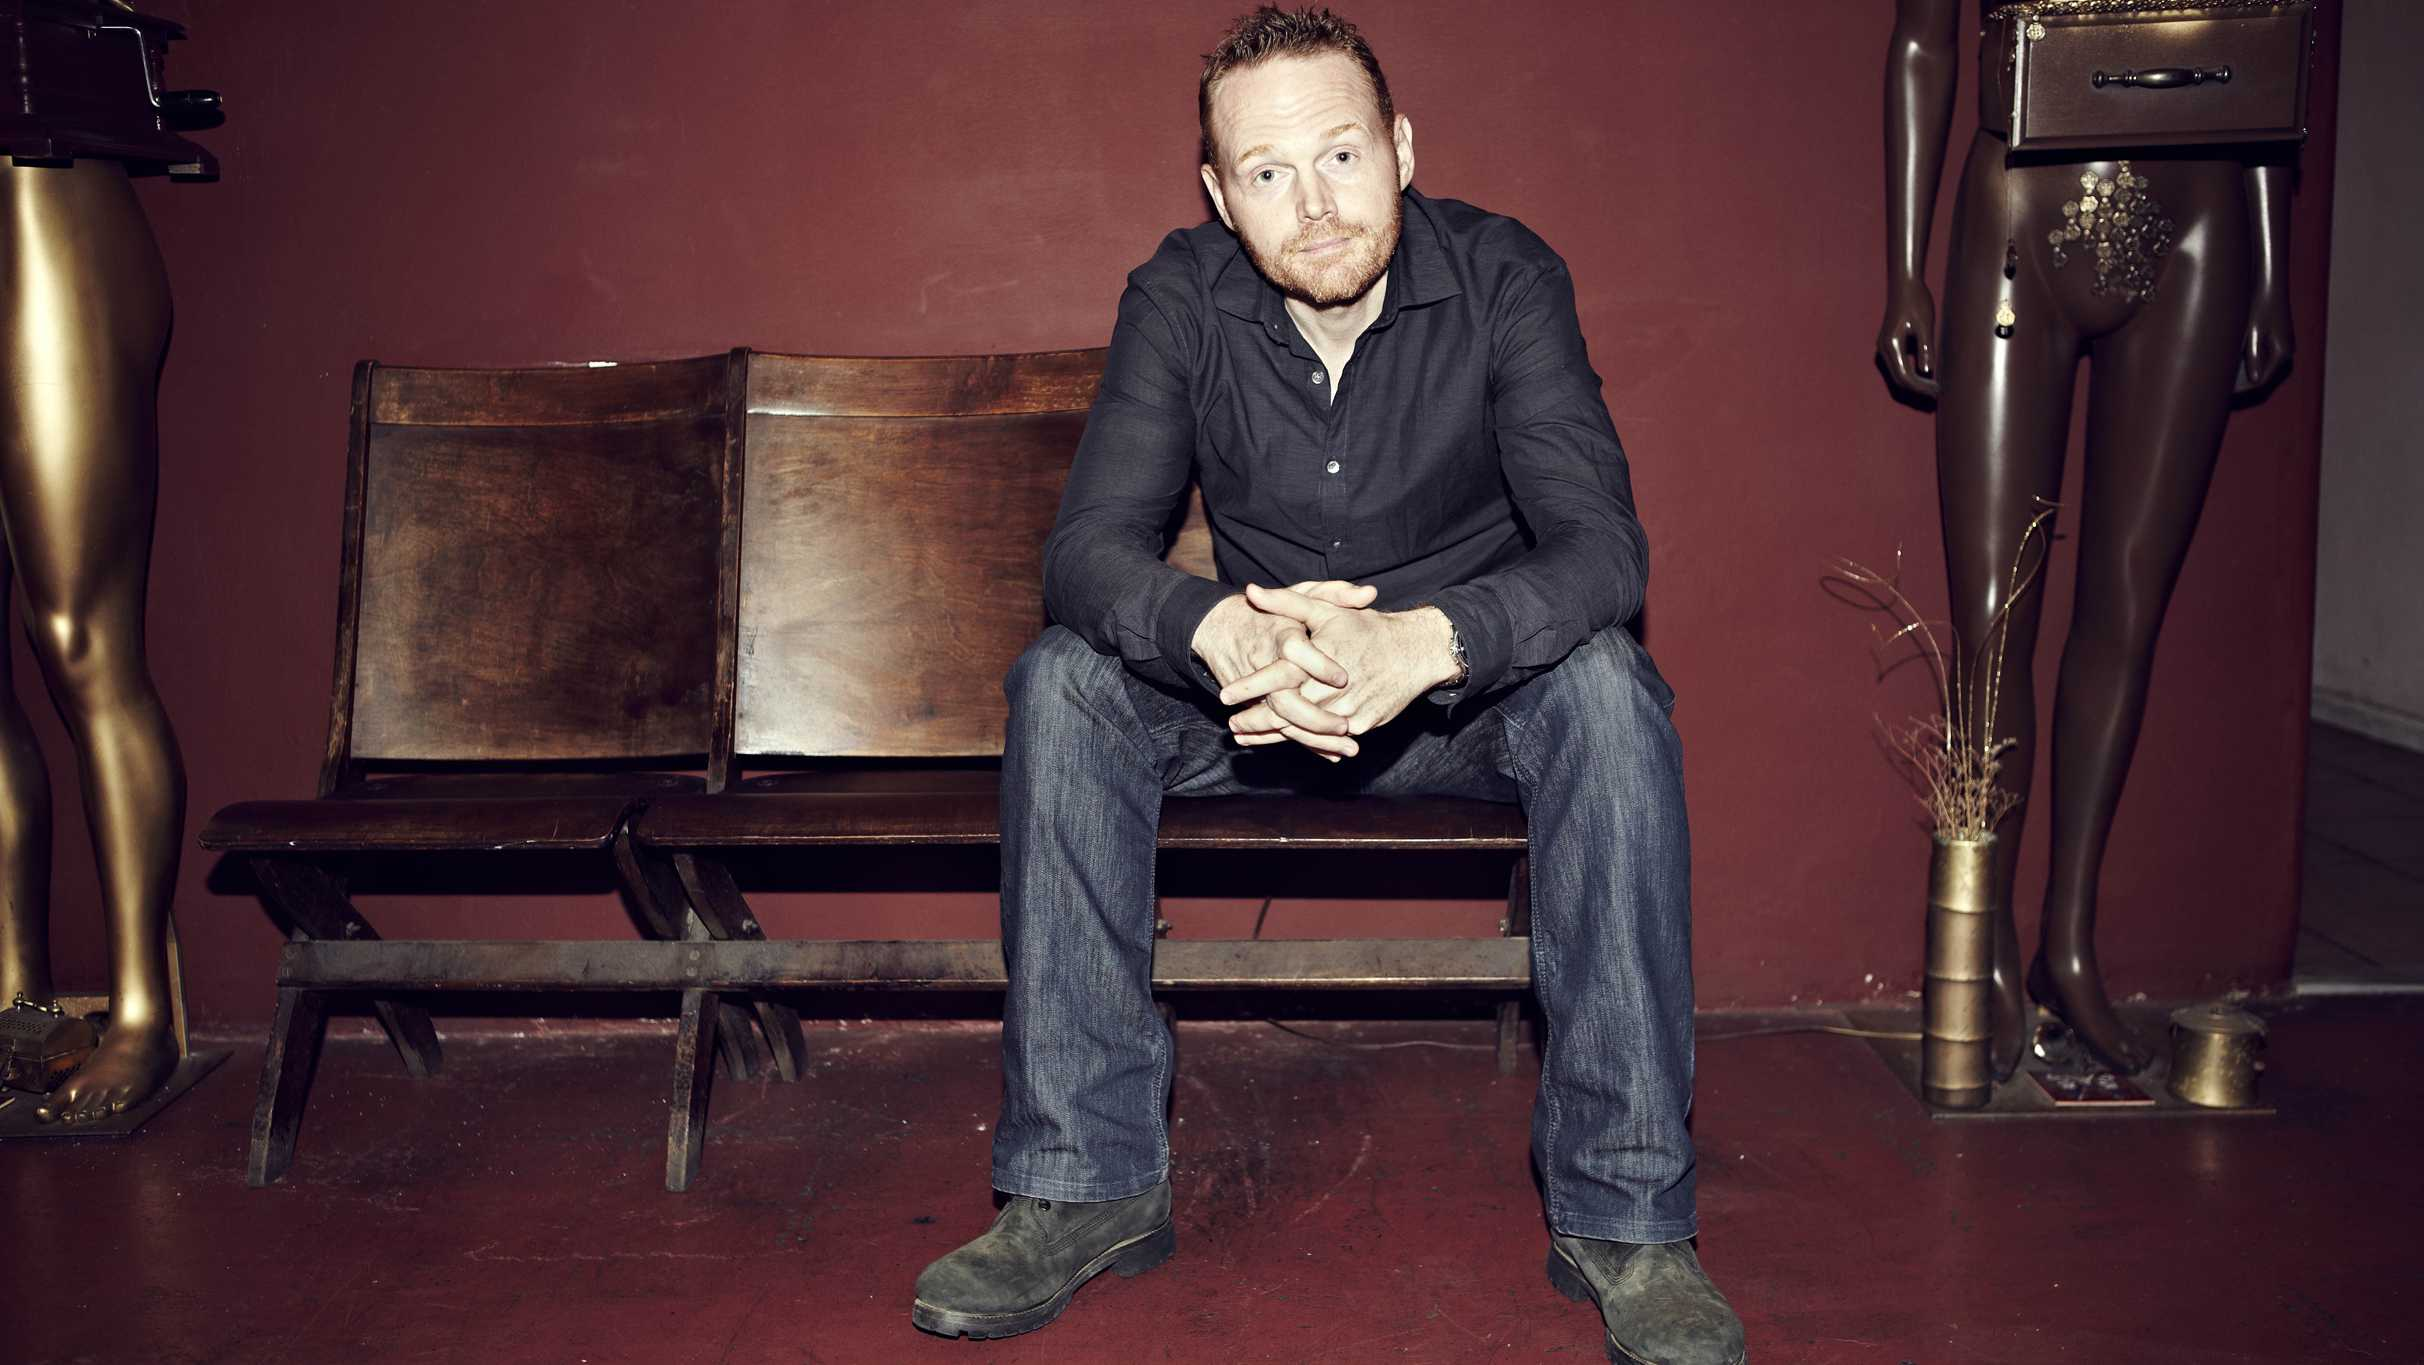 Boston comedian Bill Burr is set to perform May 8th in Jacksonville at the Moran Theater, located in the Times-Union Center for the Performance Arts.